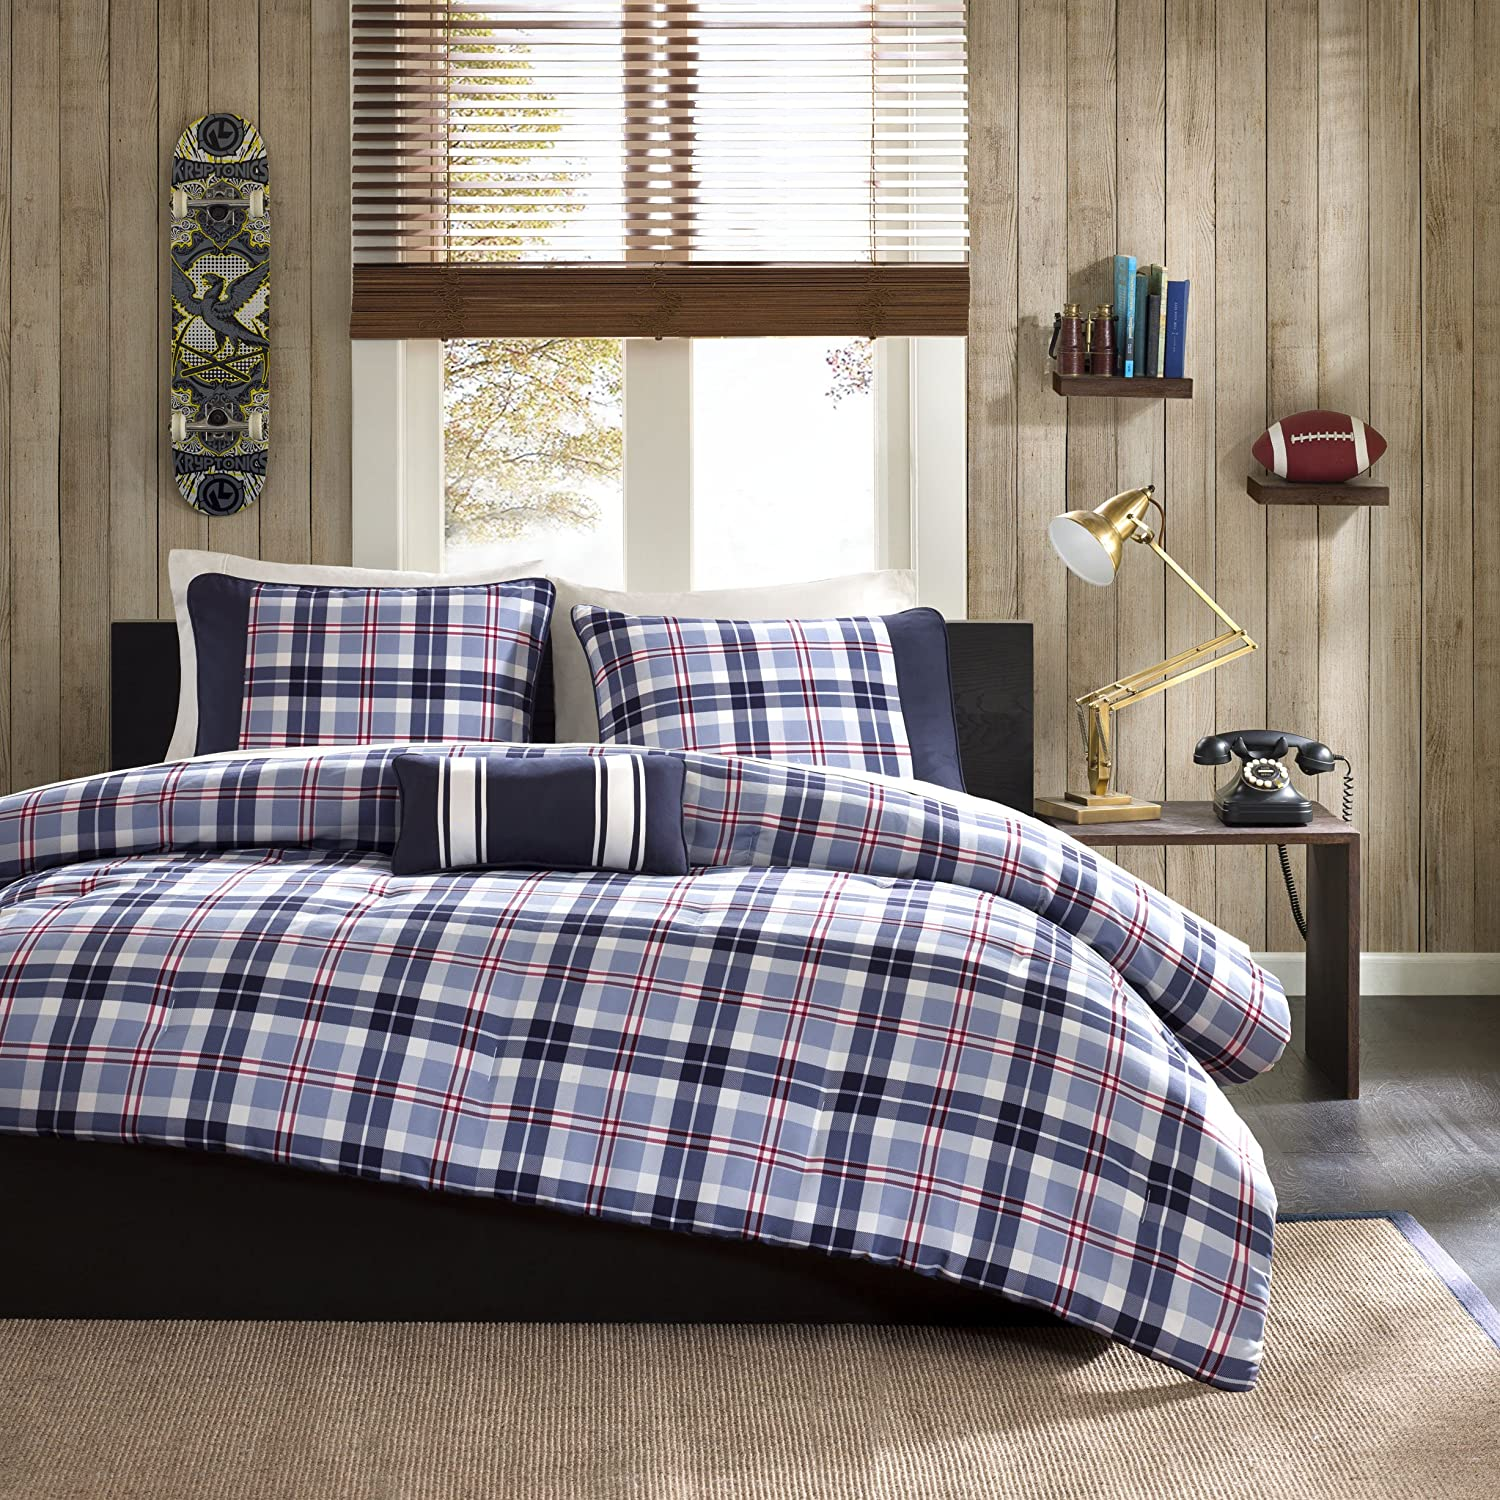 duvet design home forter buffalo cuddl comforter ideas pbk nafis flannel check plaid of duds